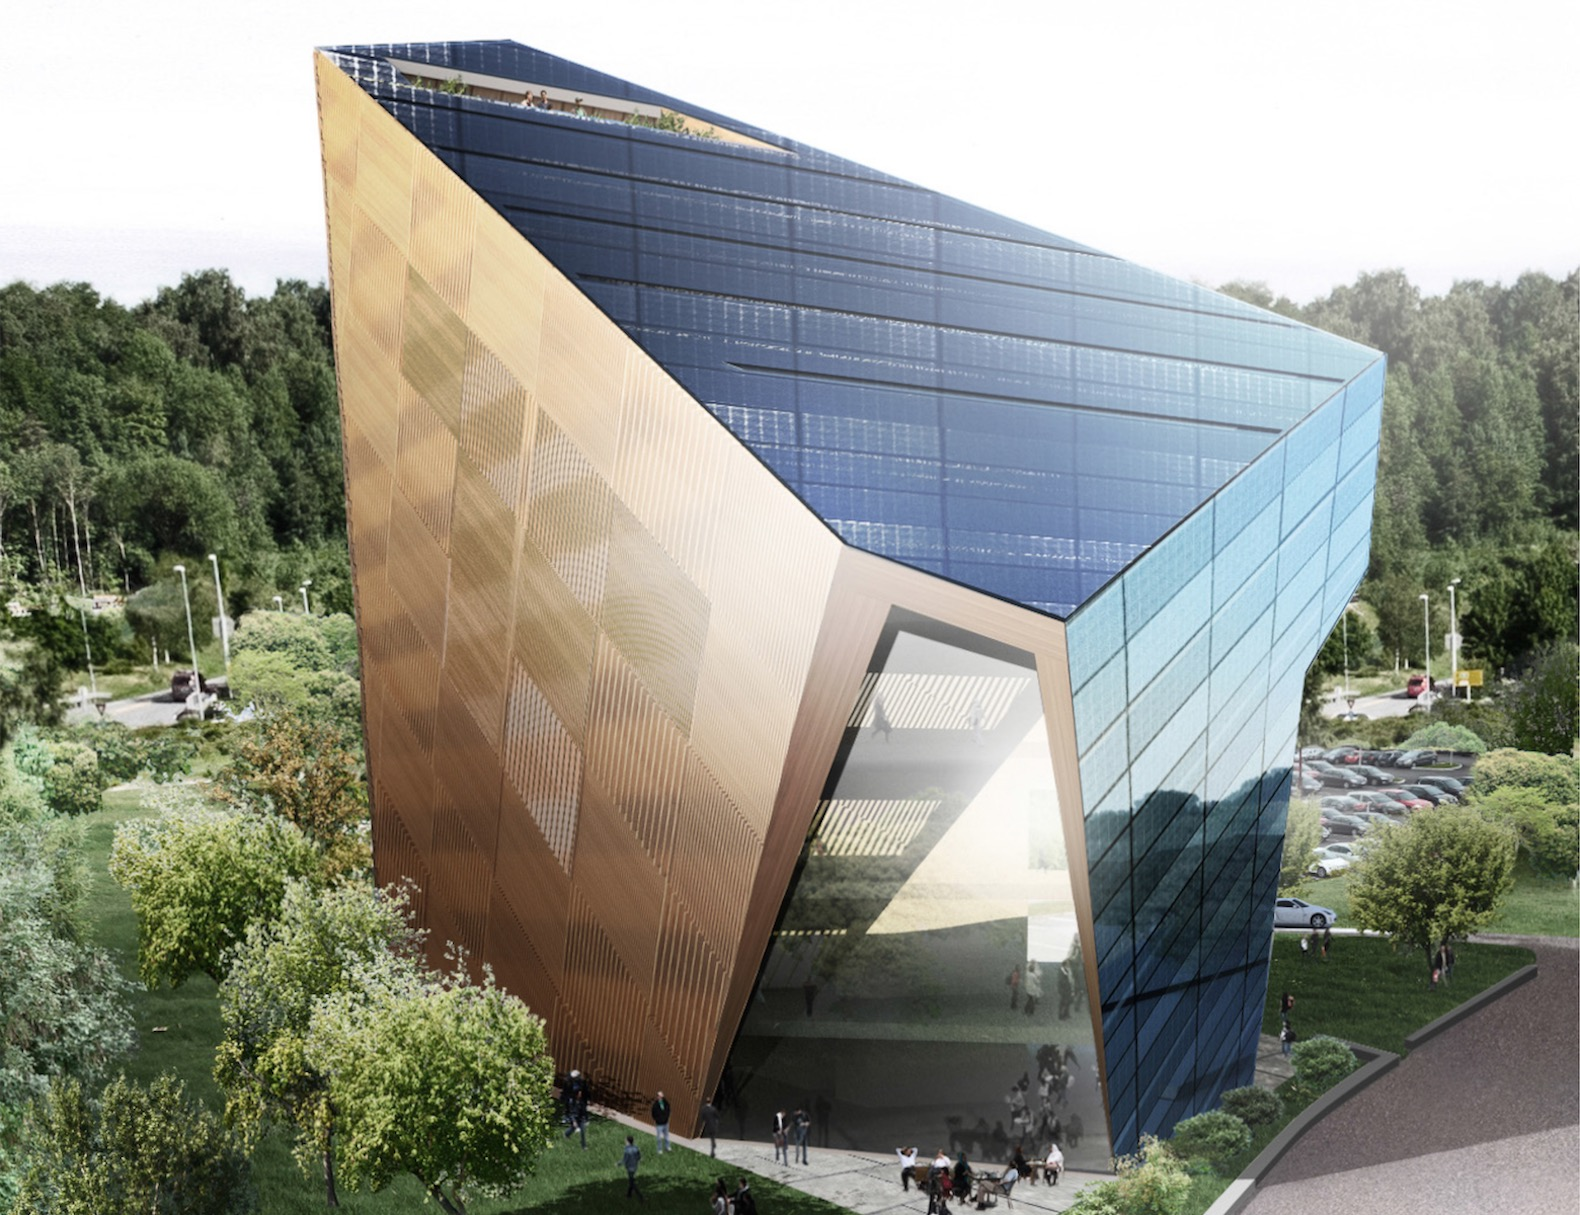 Powerhouse Telemark by Snøhetta, Powerhouse Telemark by Emil Eriksrød, Powerhouse Telemark in Norway, Powerhouse Telemark in Porsgrunn, plus energy architecture in Norway, energy positive building in Norway, Norway plus energy office, plus energy office building